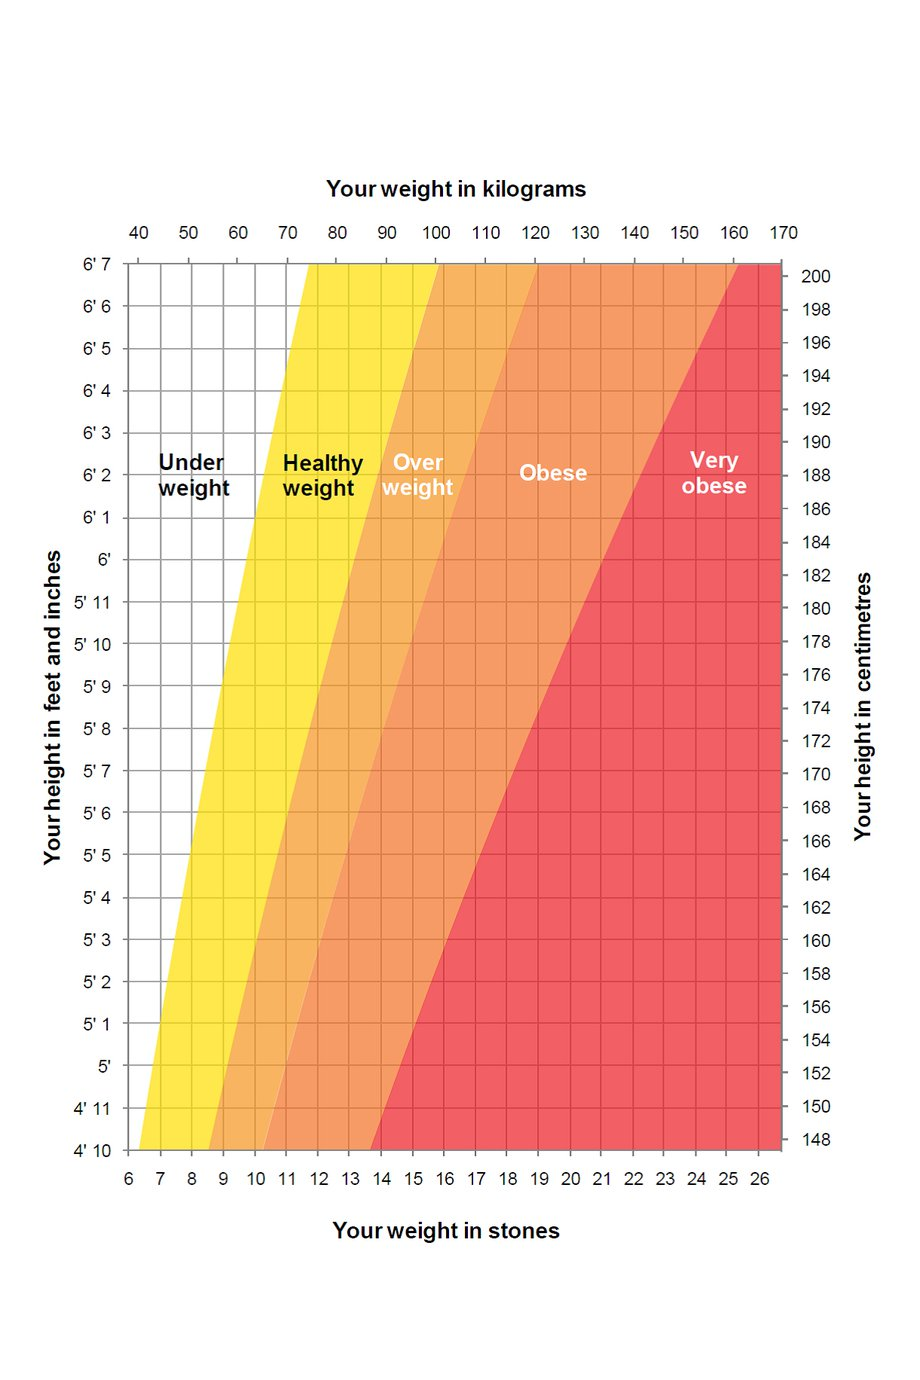 Average weight for adult male